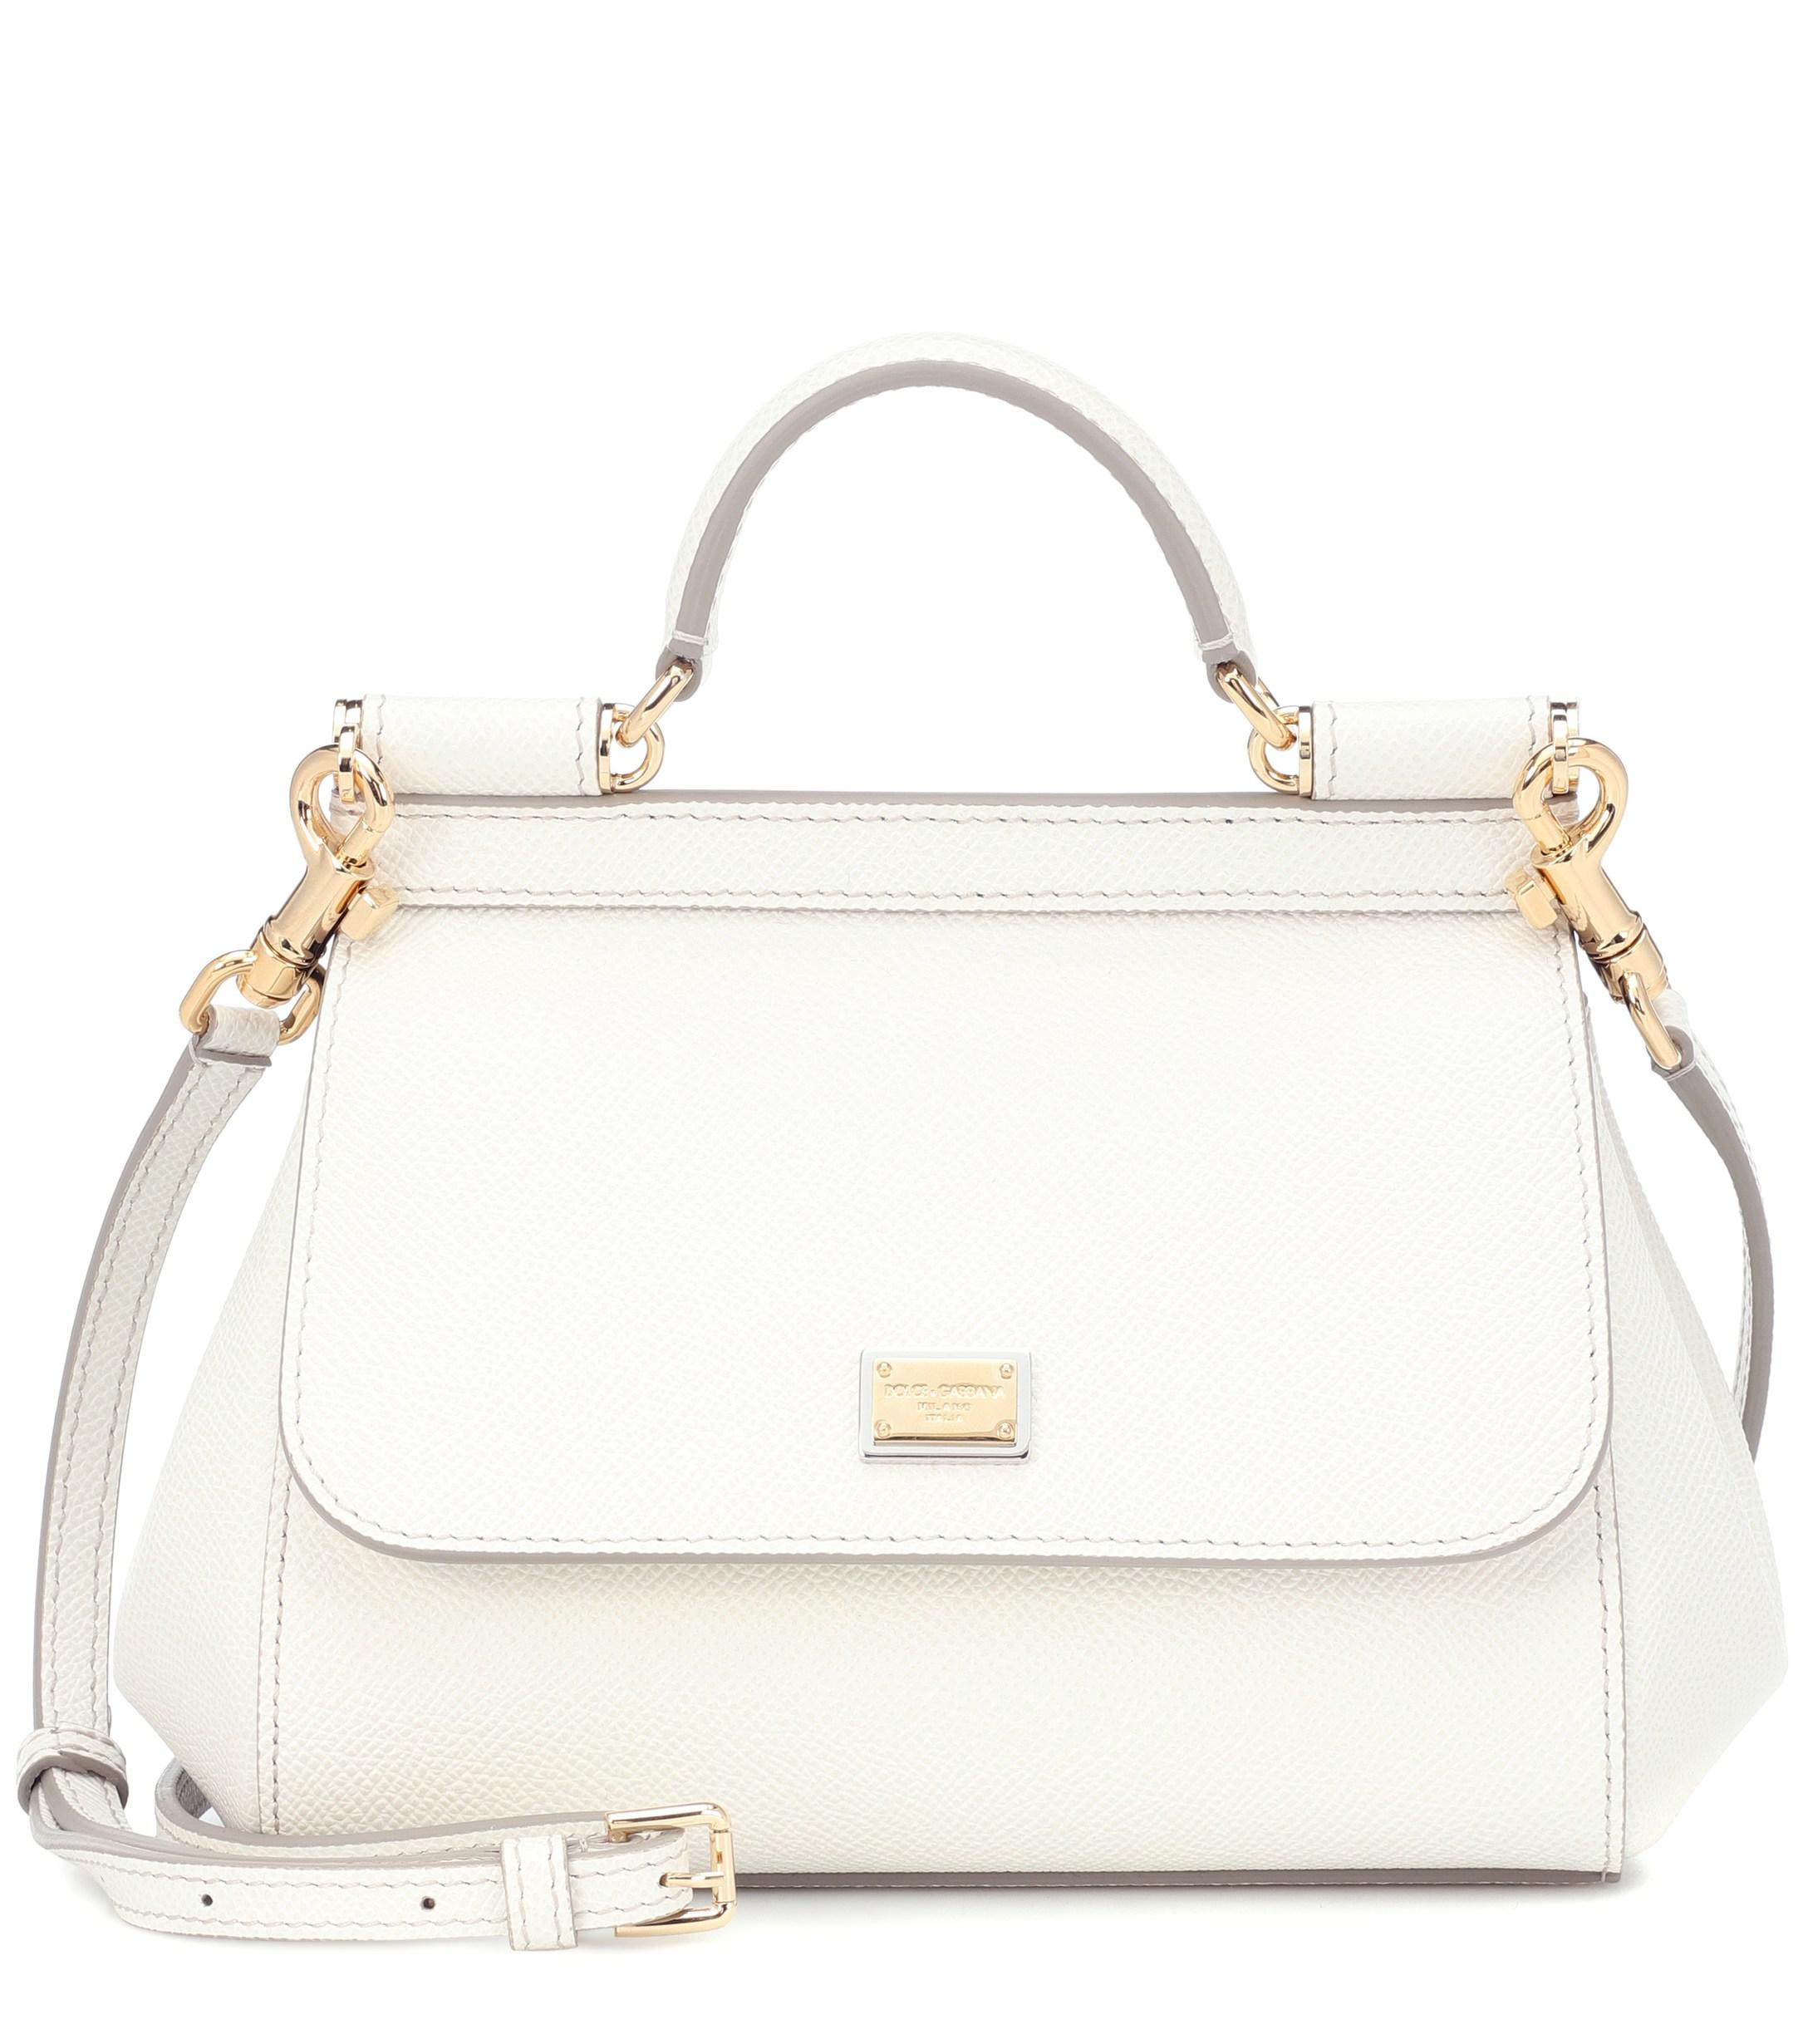 660a3b99f53 Lyst - Dolce & Gabbana Sicily Small Shoulder Bag in White - Save ...